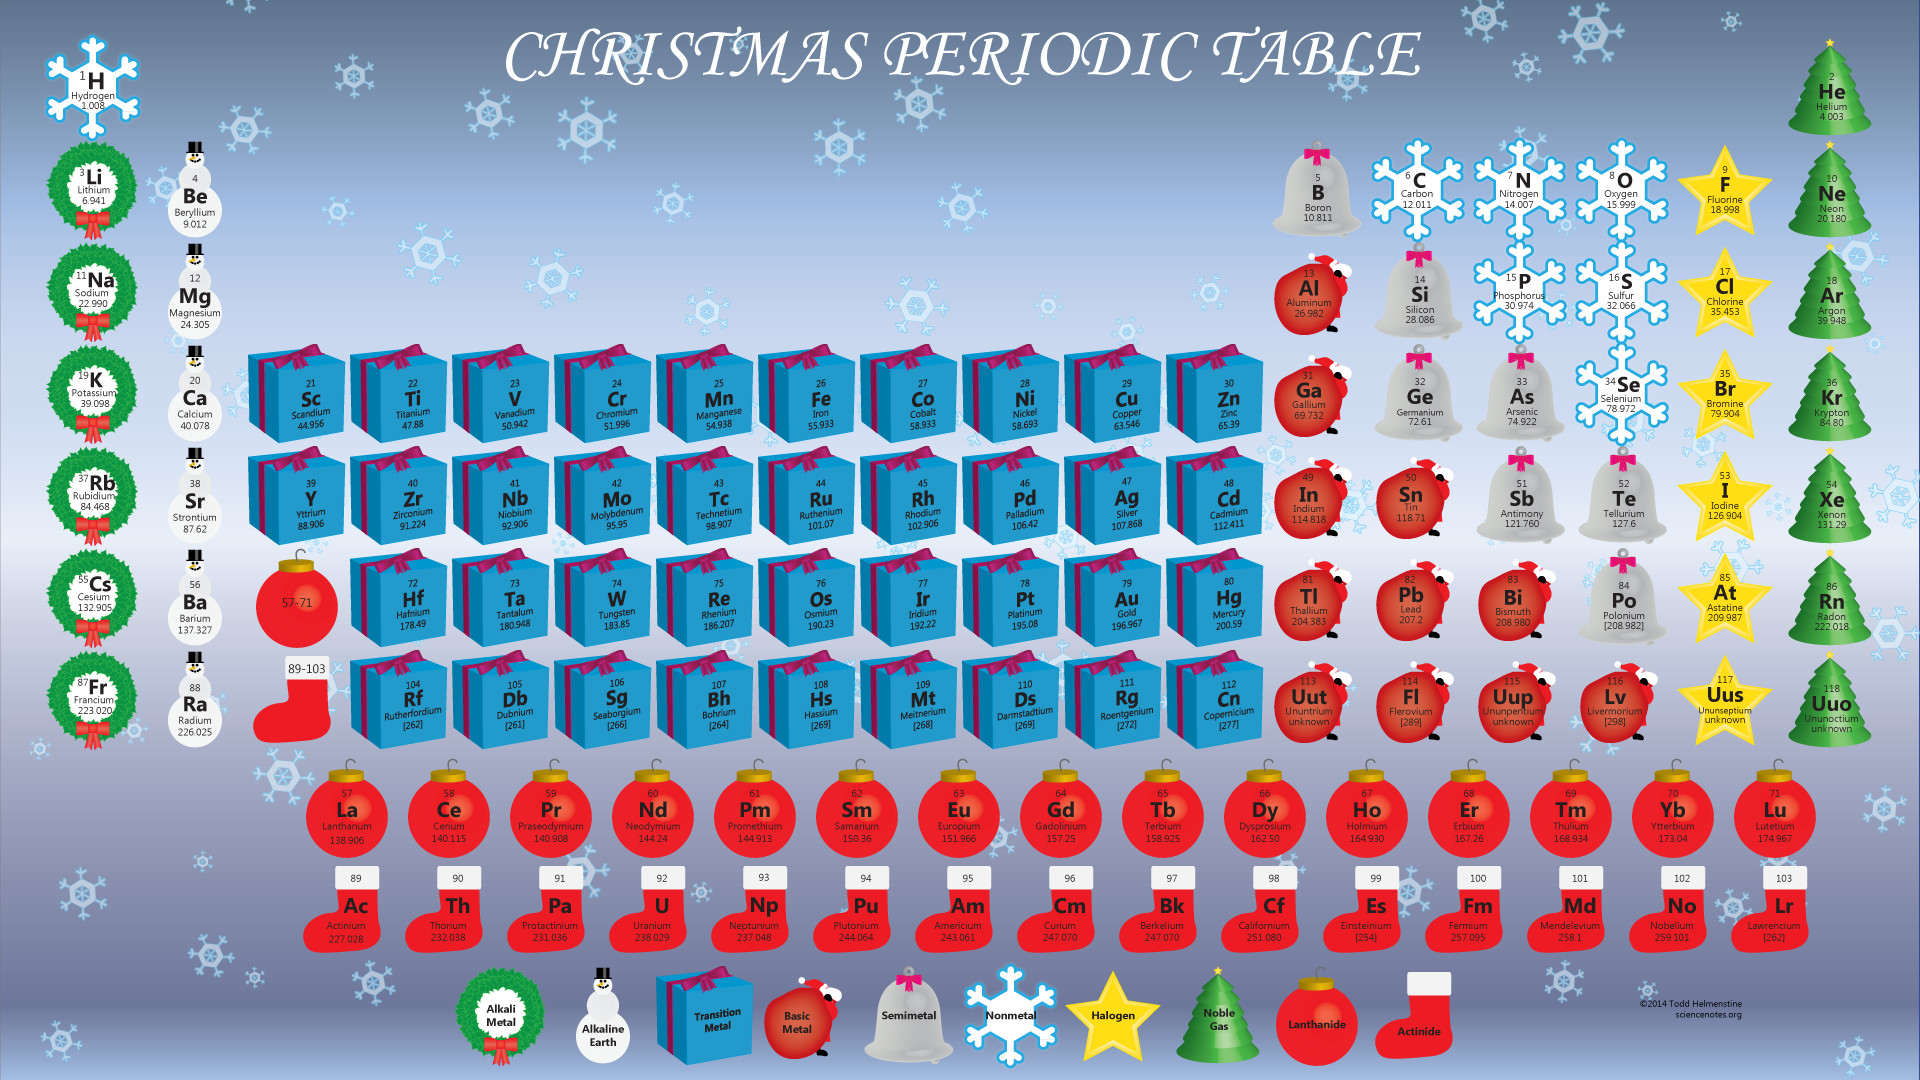 Periodic table wallpaper high resolution 73 images 1920x1080 periodic table wallpaper periodic table wallpaper pinterest periodic table urtaz Image collections